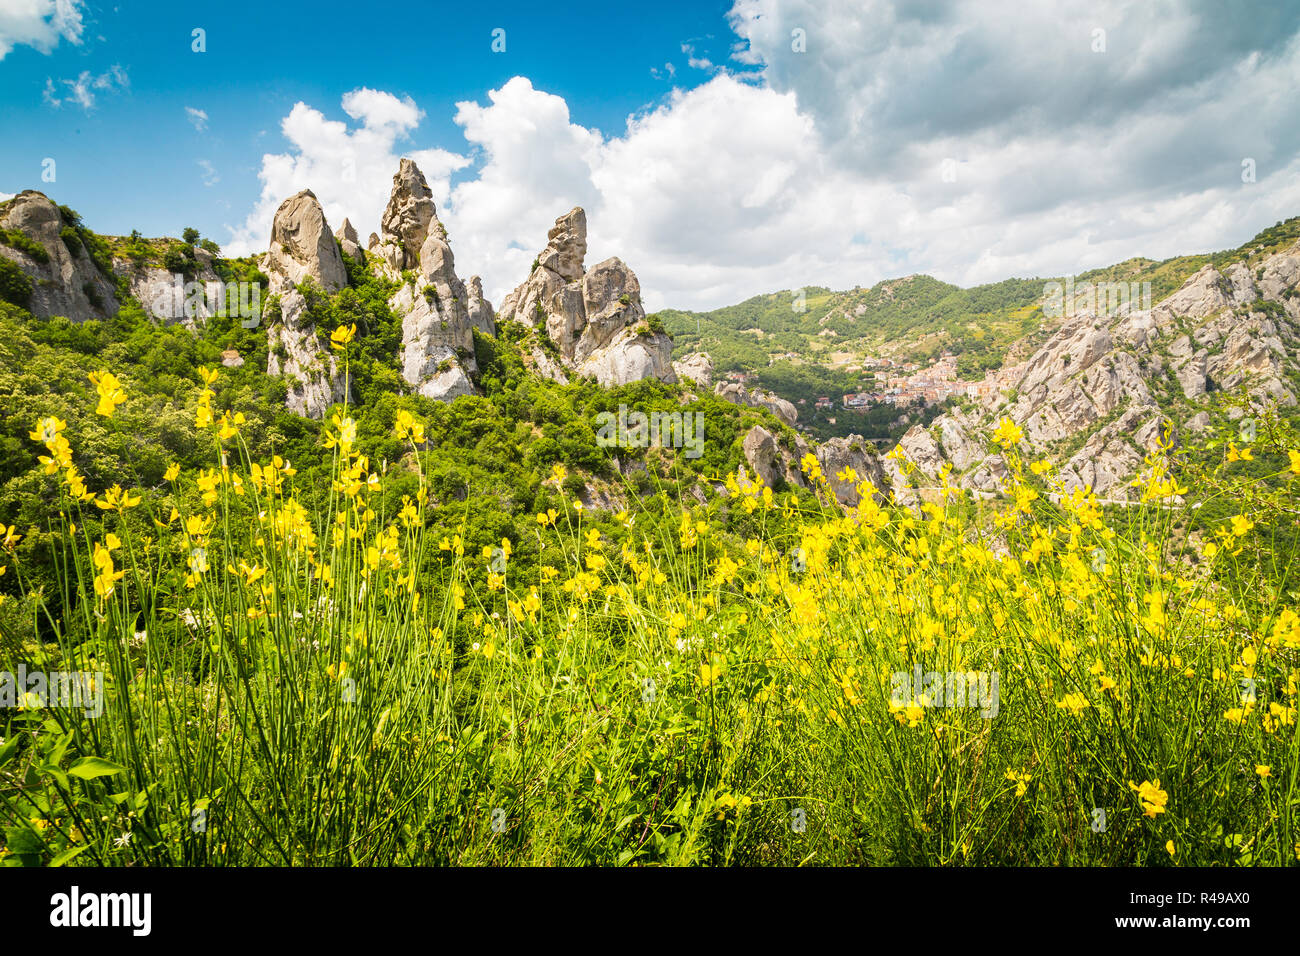 Panoramic view of famous Lucan Dolomites with beautiful mountain village of Castelmezzano in summer, Basilicata, Italy Stock Photo